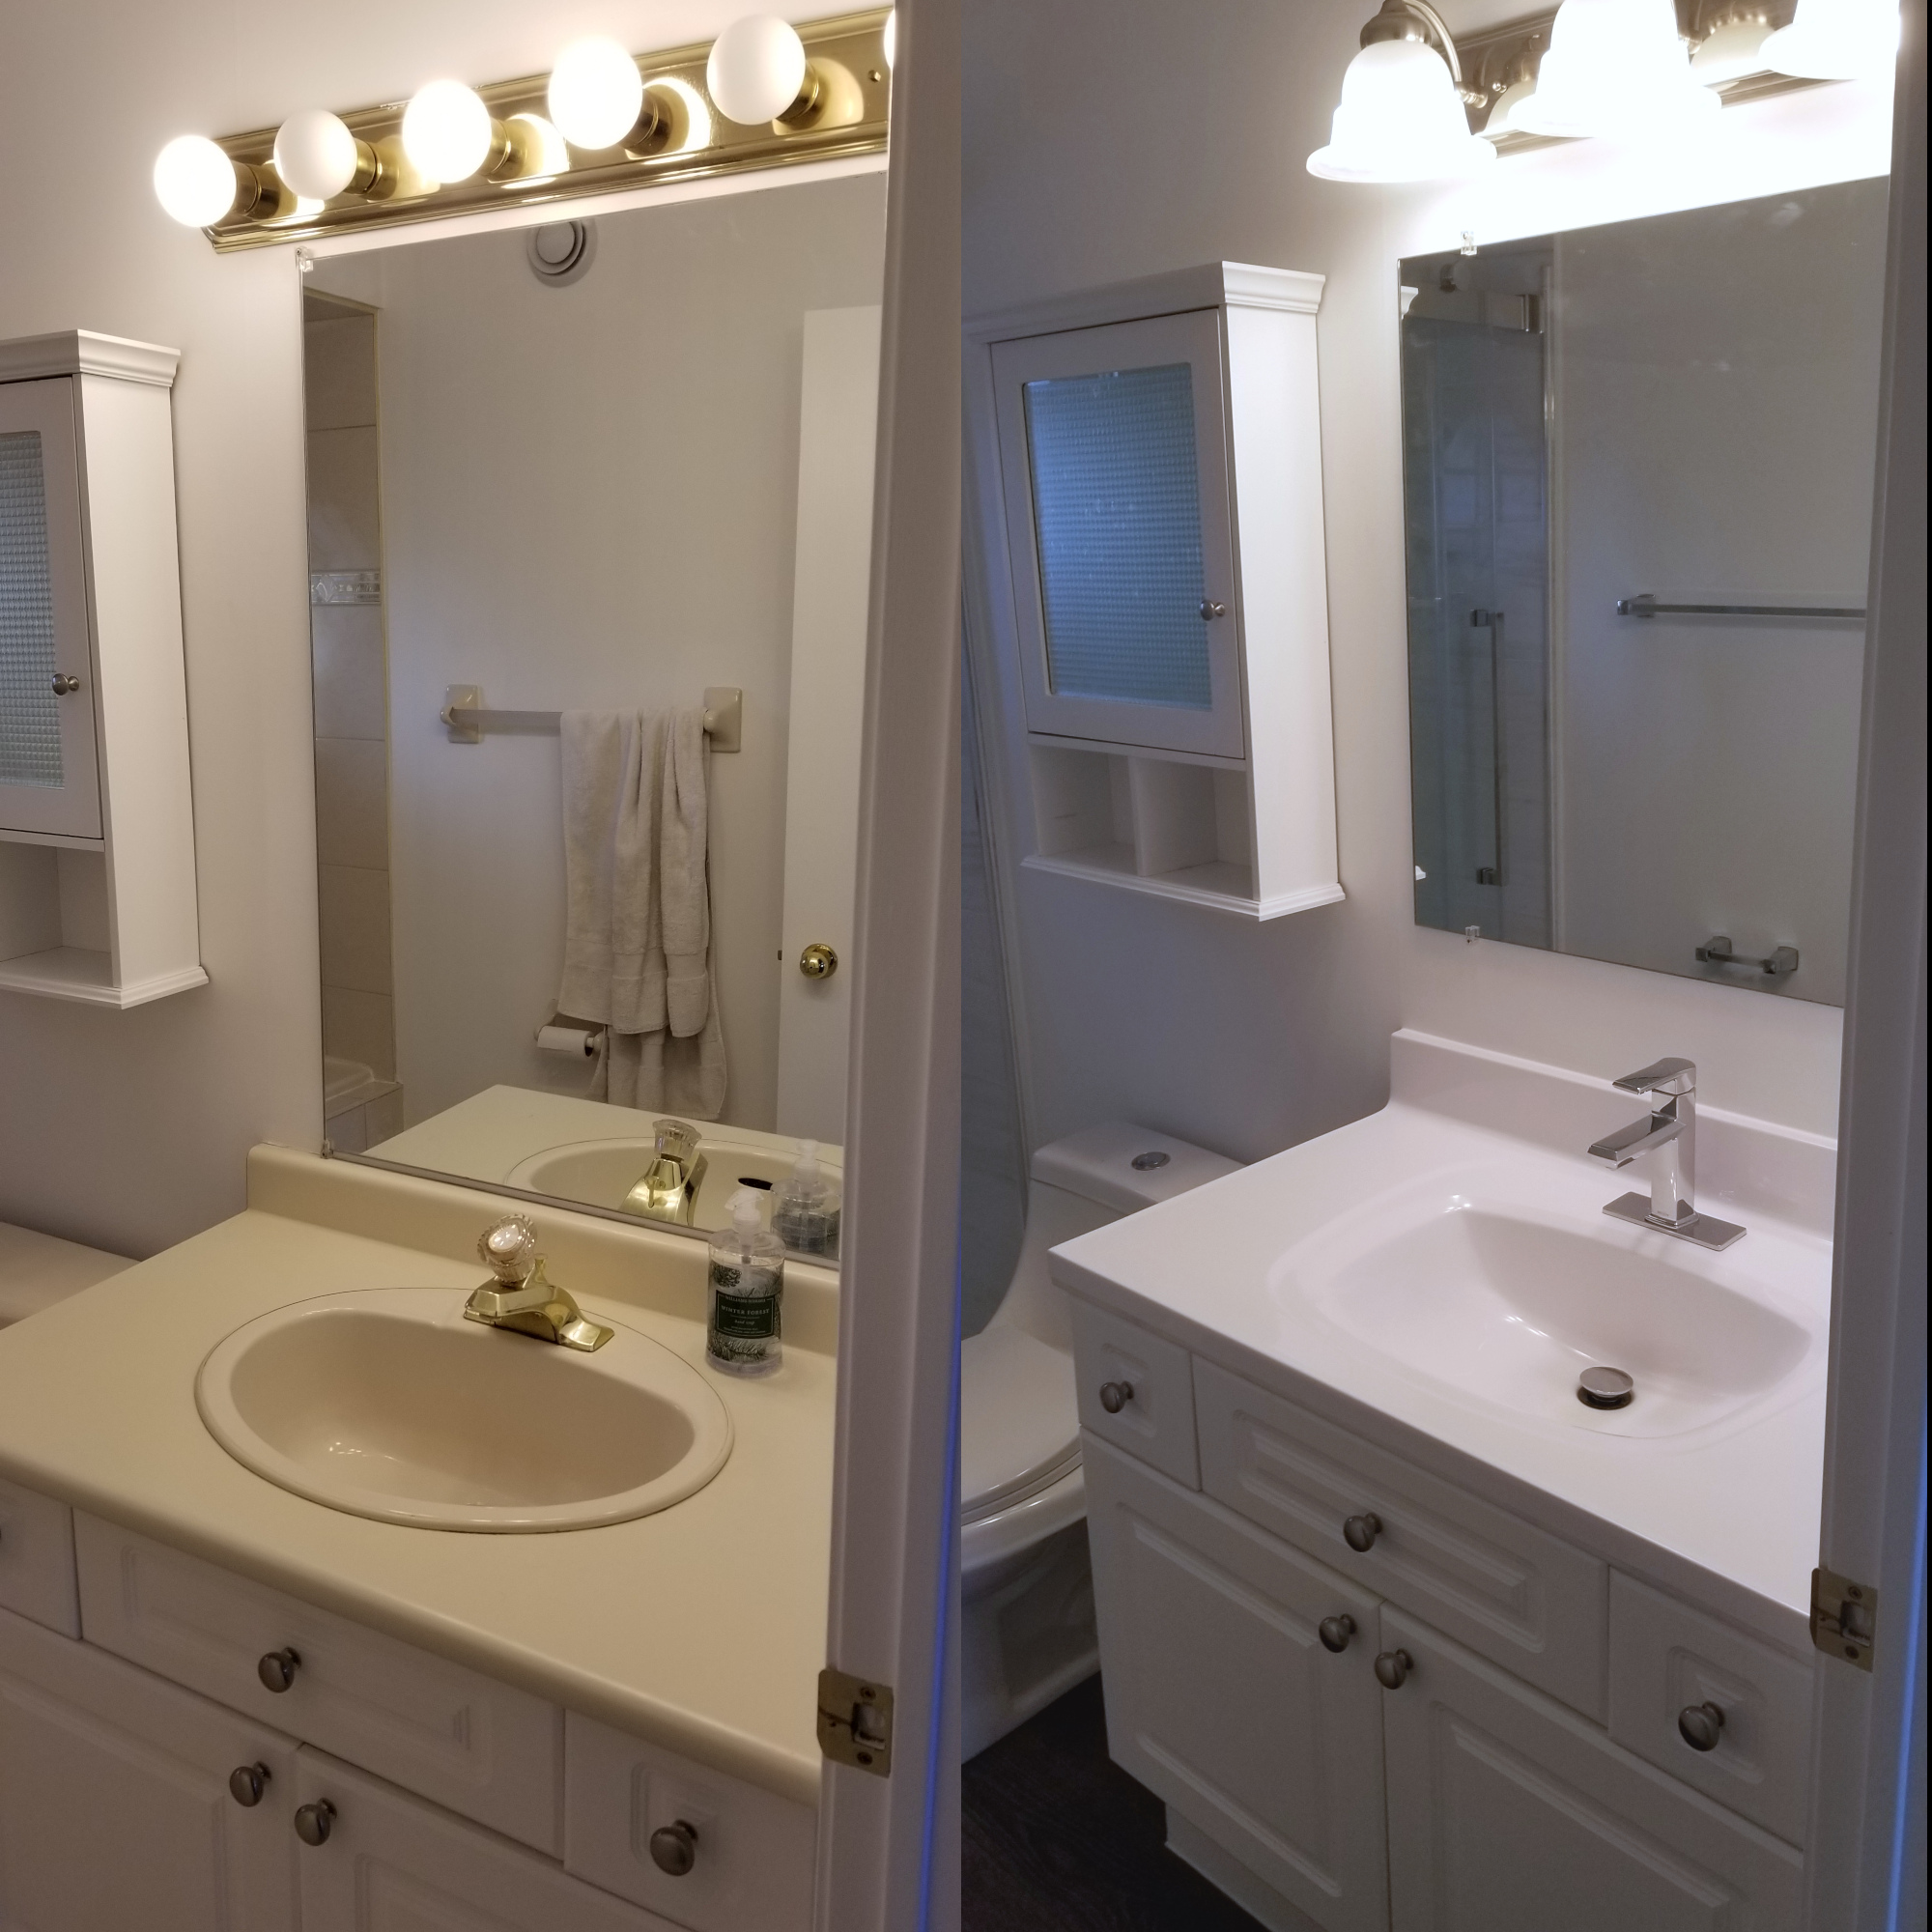 Before and after bathroom vanity renovation